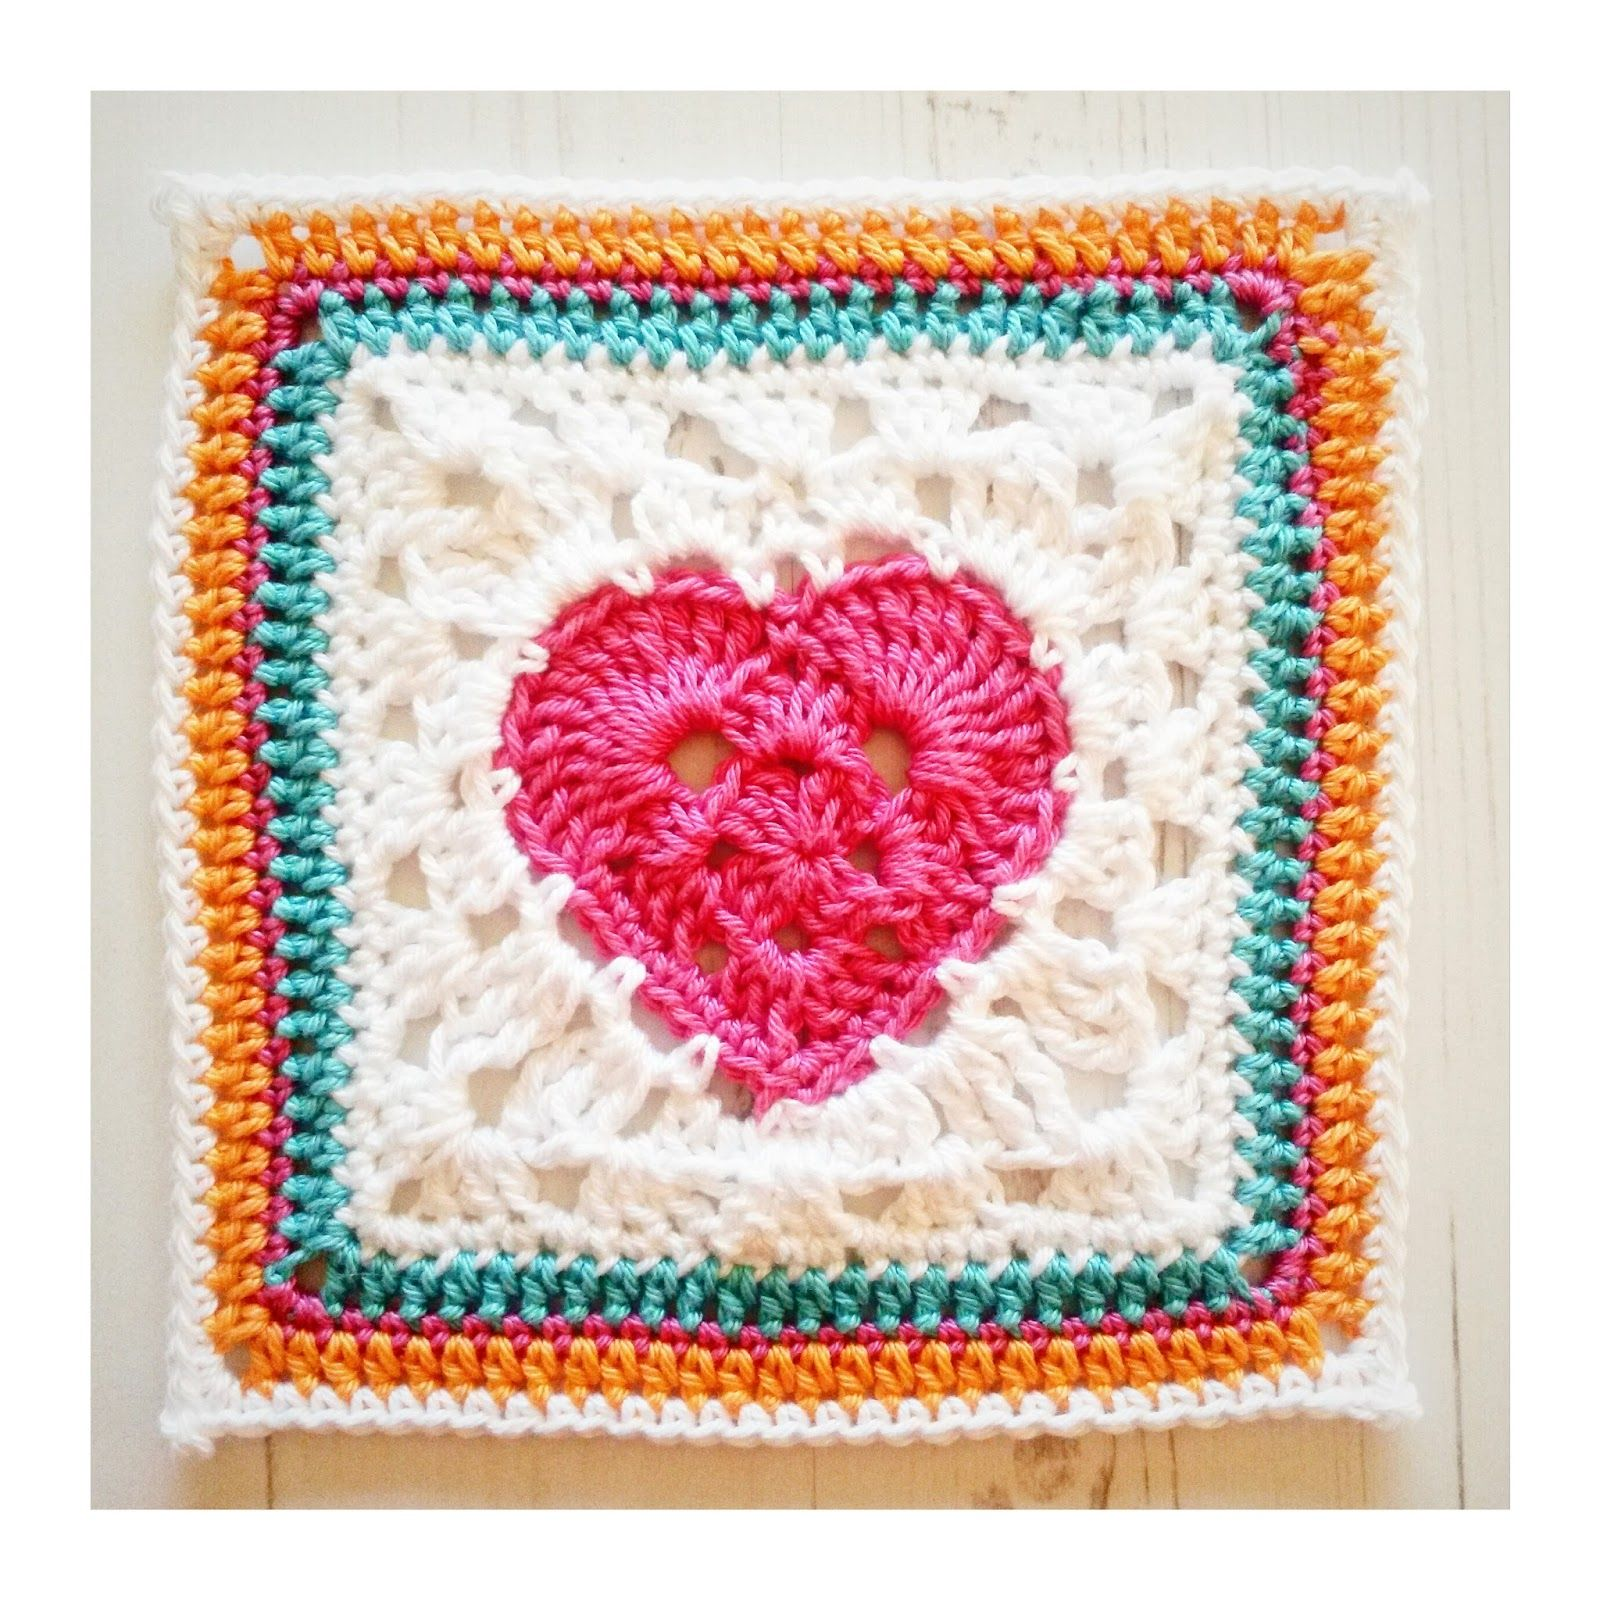 Crochet Tea Party: Free crochet heart granny square pattern ...